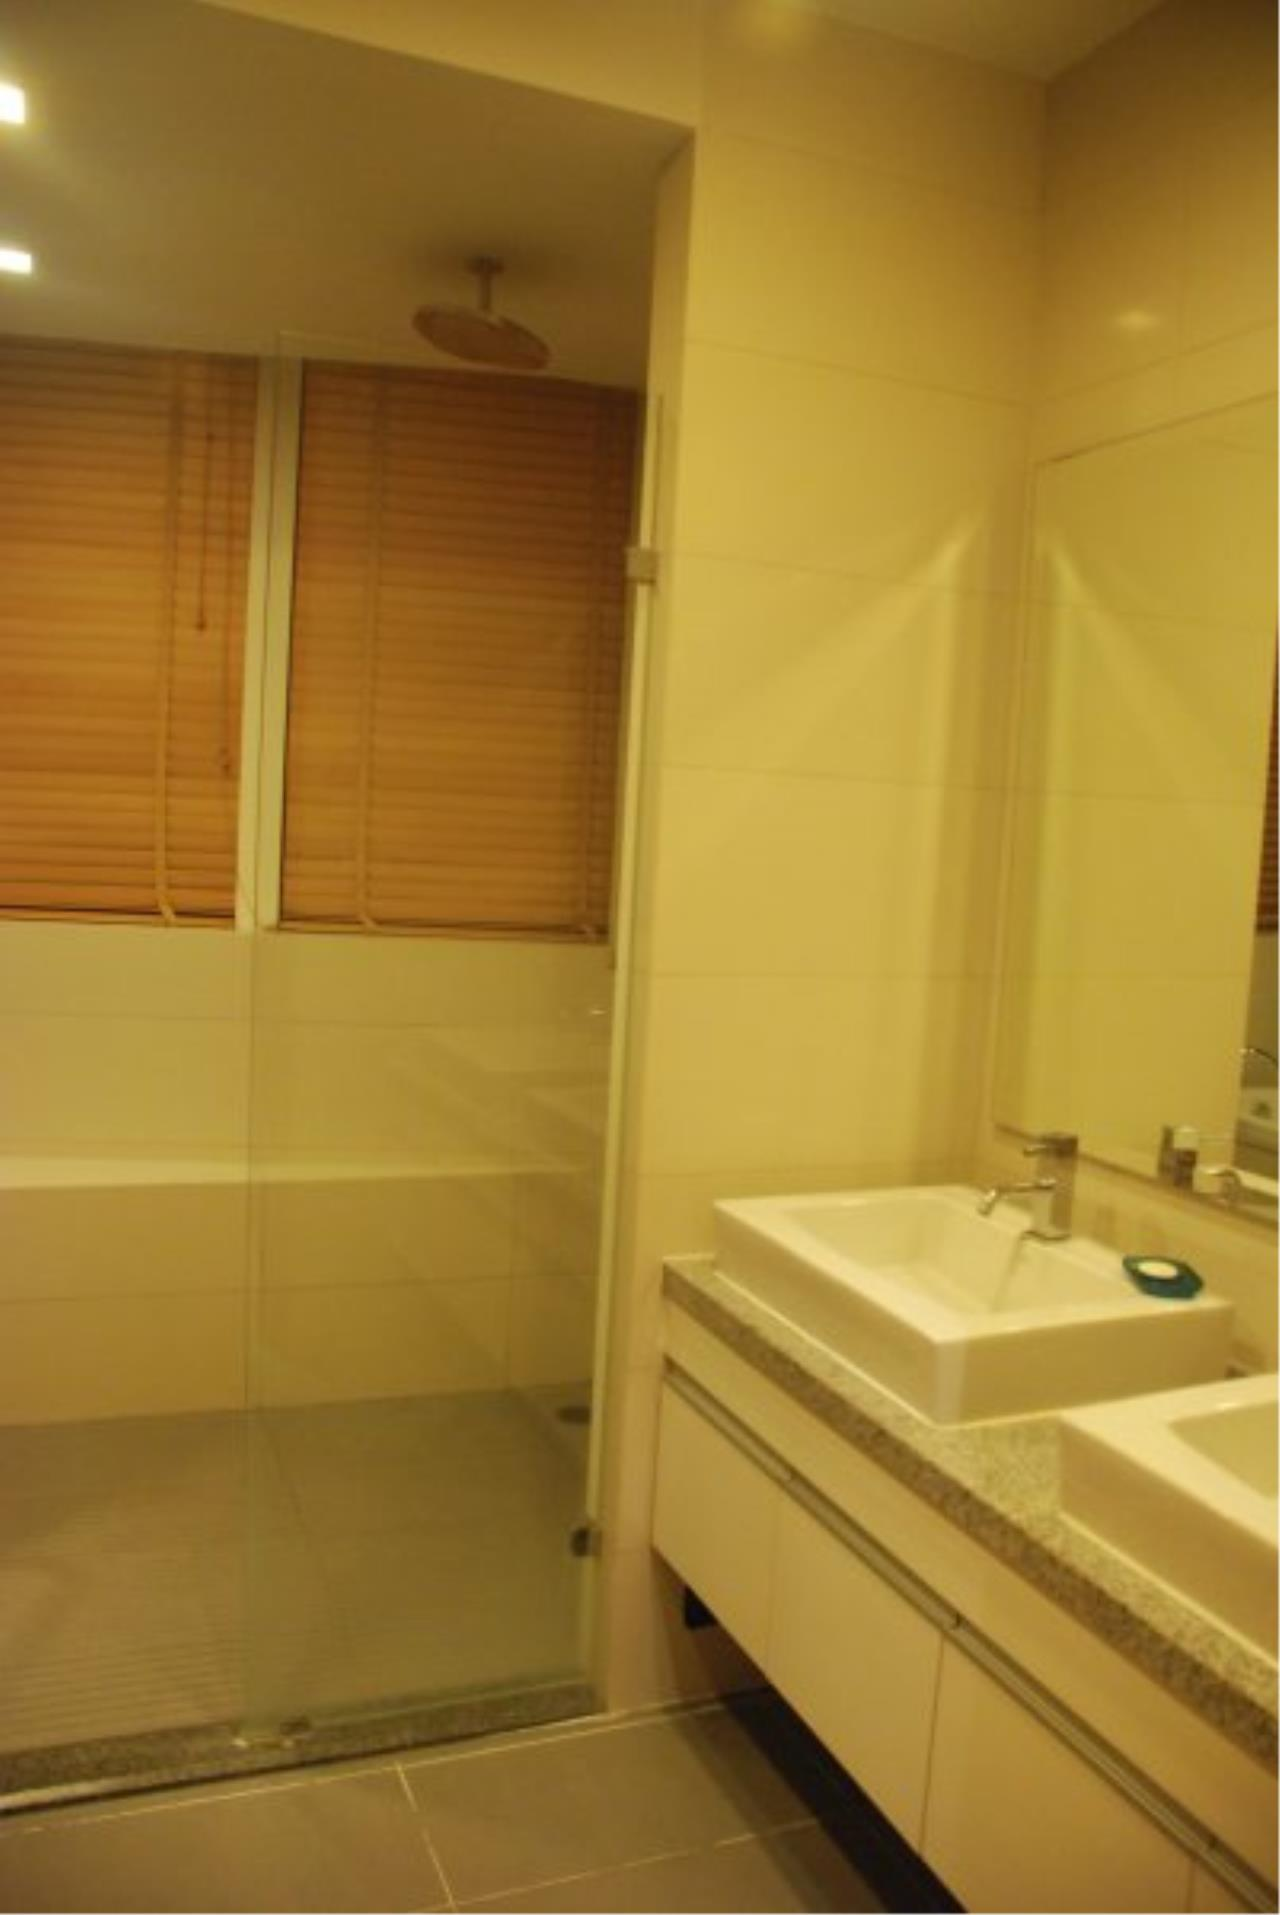 Piri Property Agency's Spacious 2 Bedrooms in the Millennium Residence for rent on high floor 13